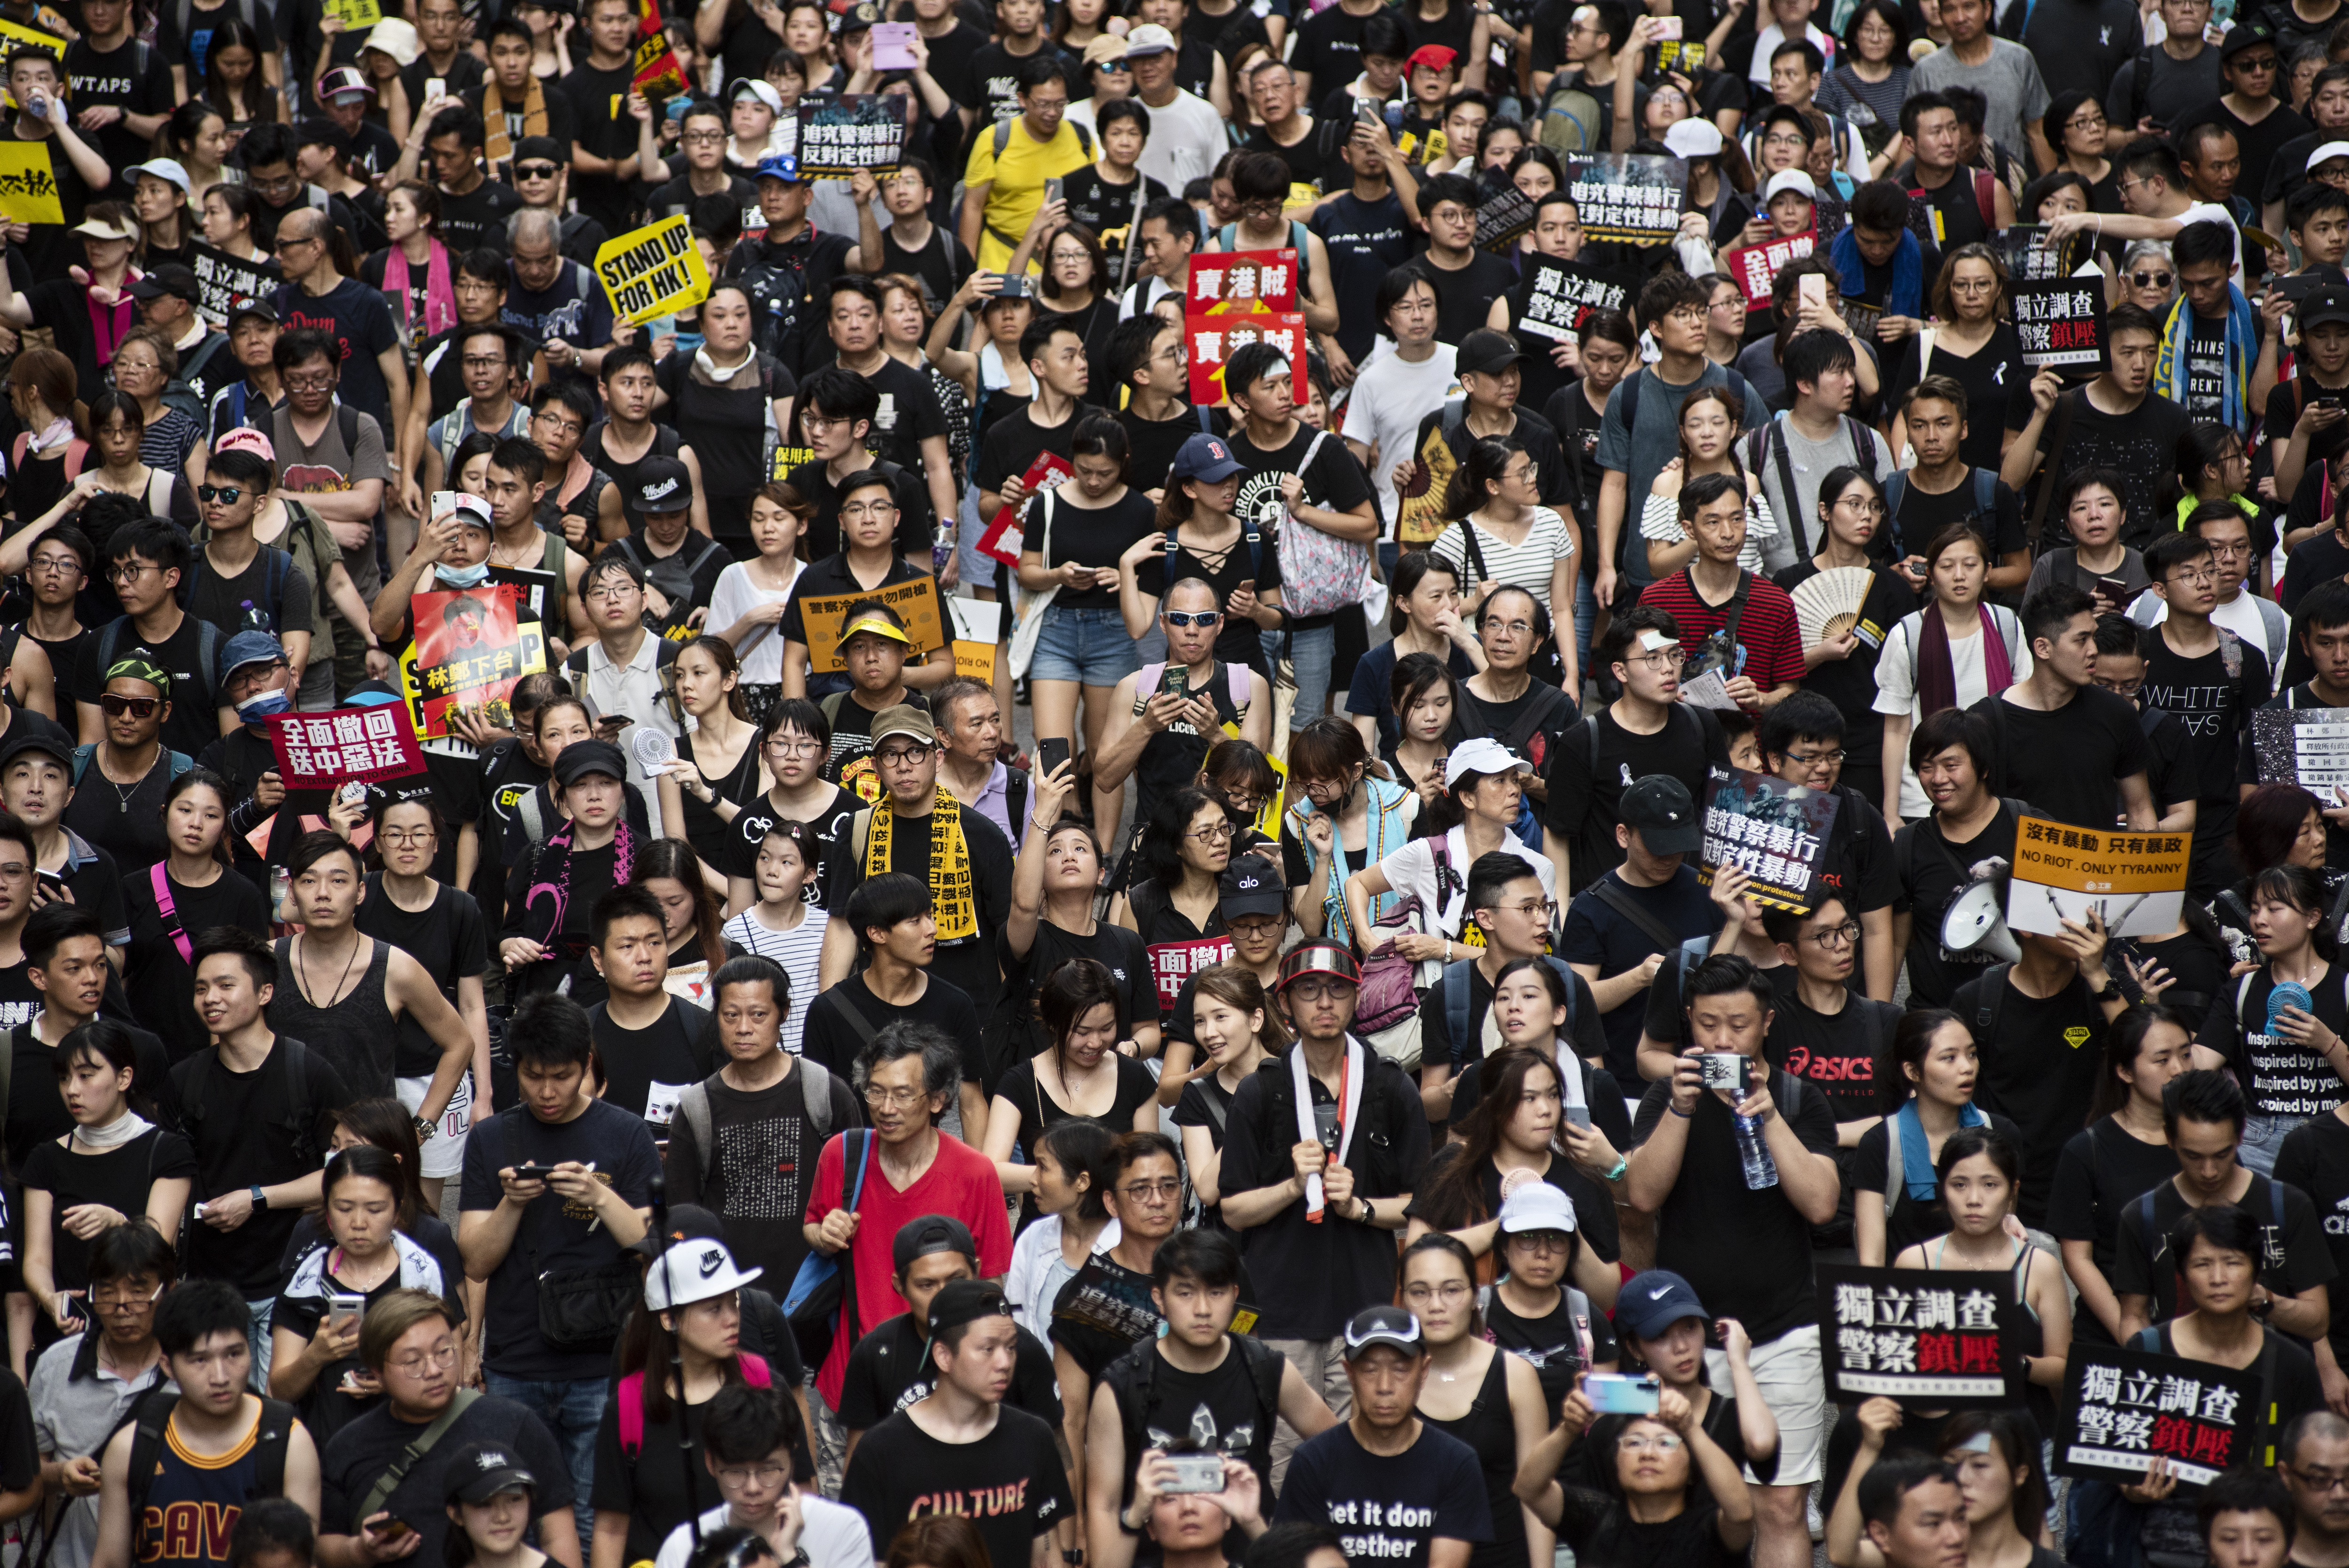 Demonstrators in Hong Kong hold anti-government placards and chant slogans during a march on July 1, 2019.